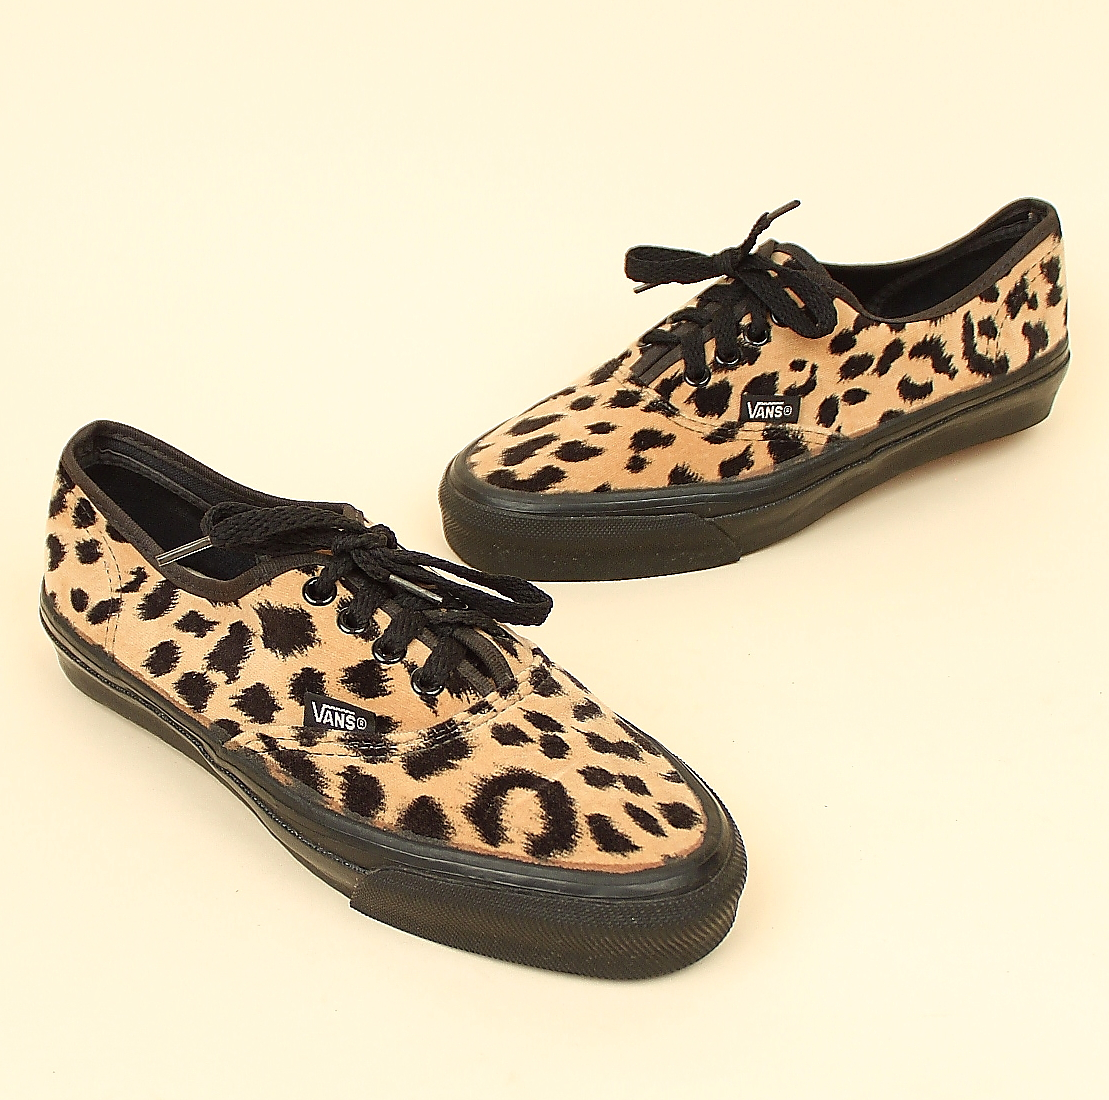 Vintage Velour Leopard Print VANS Shoes Made in USA